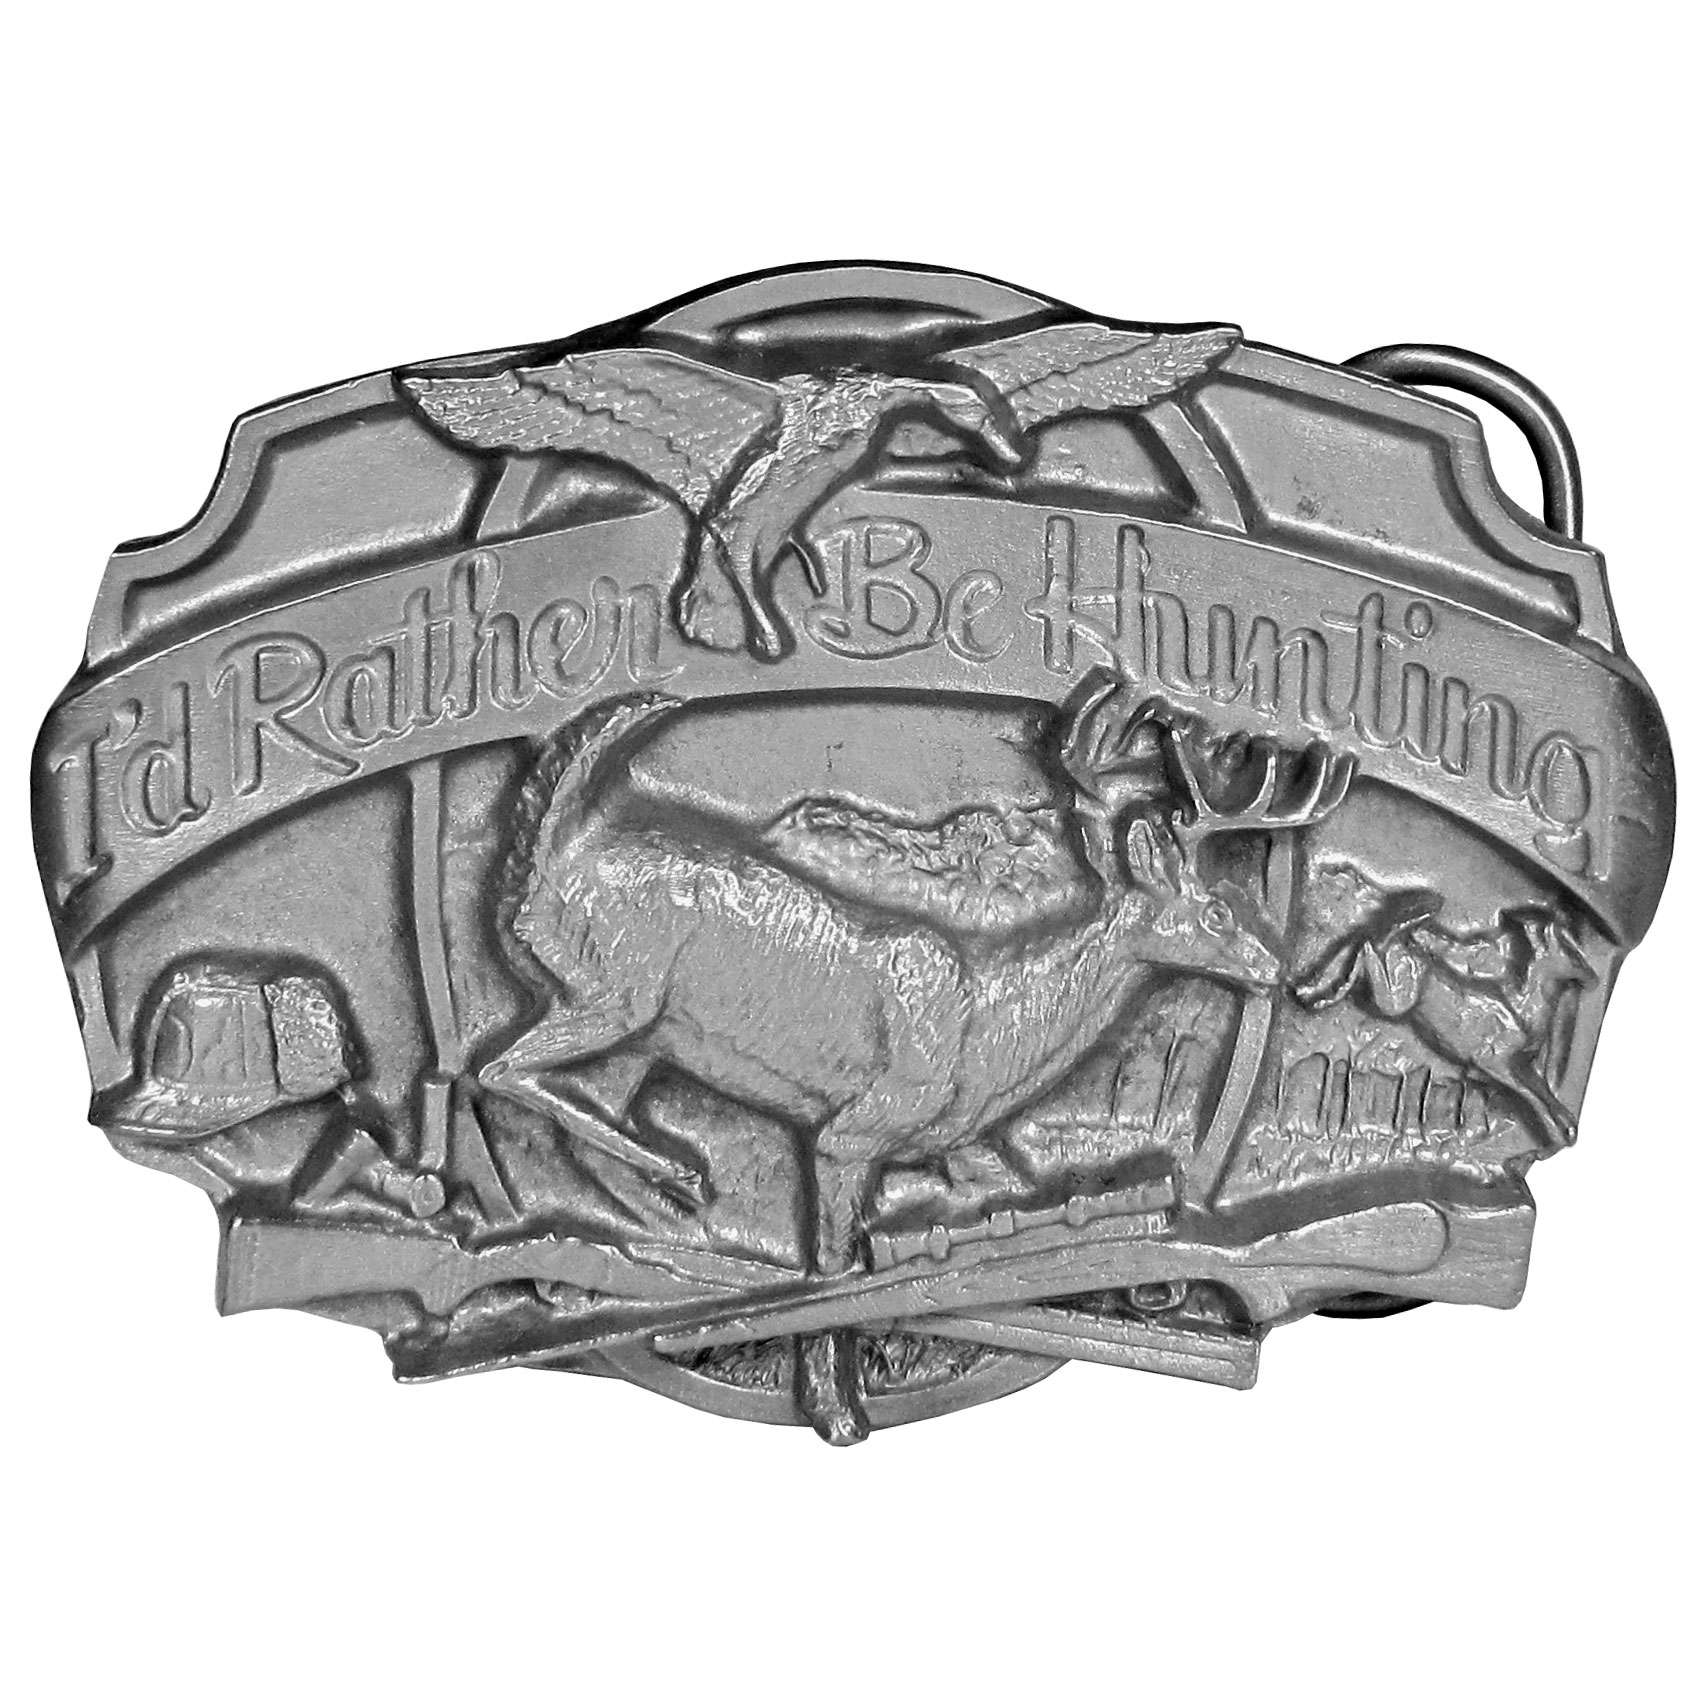 Hunting Antiqued Belt Buckle - Finely sculpted and intricately designed belt buckle. Our unique designs often become collector's items.